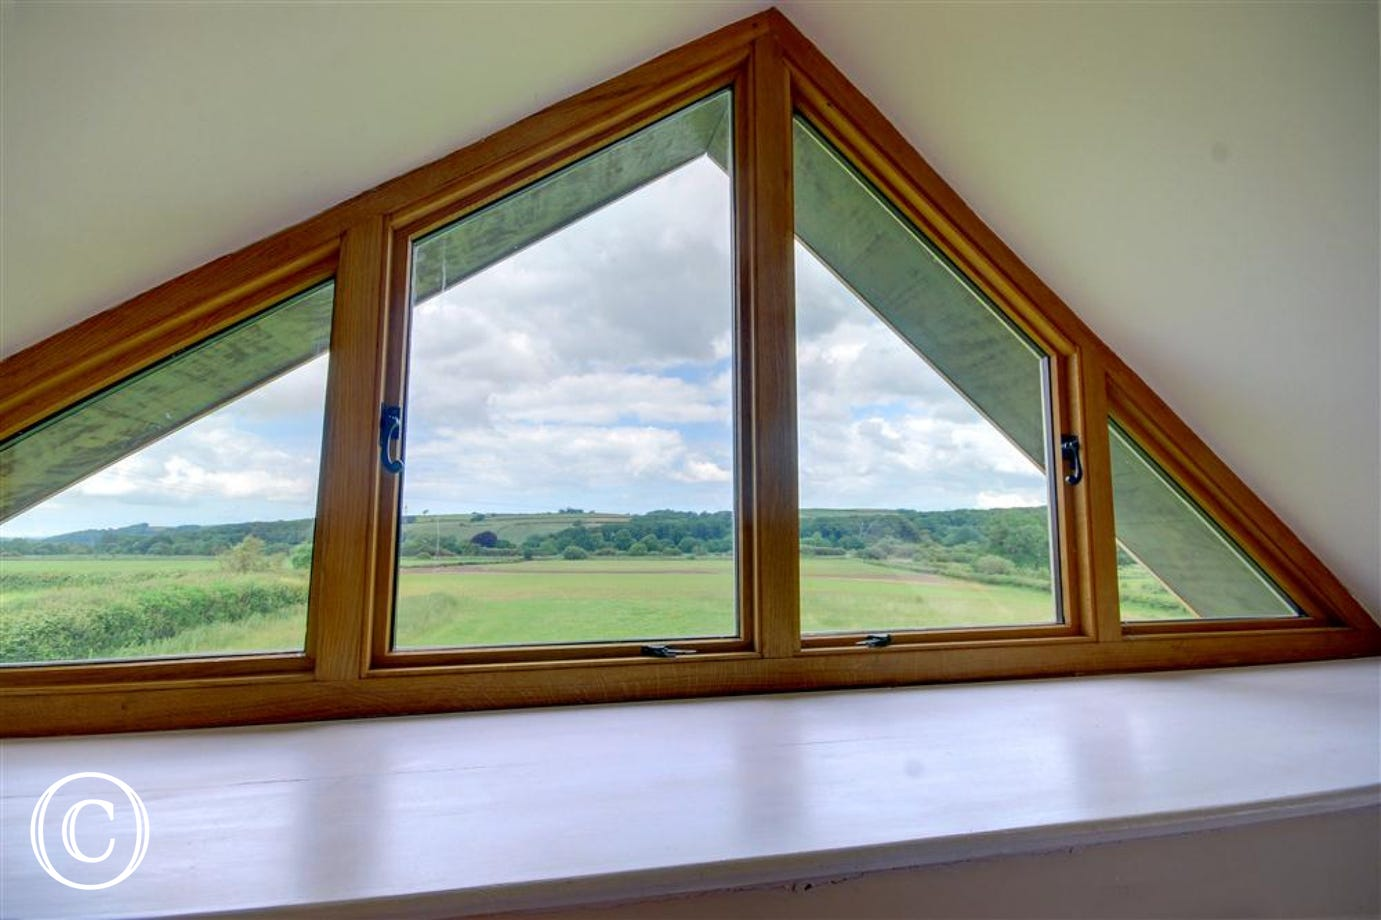 This unique window frames the stunning panoramic countryside scene